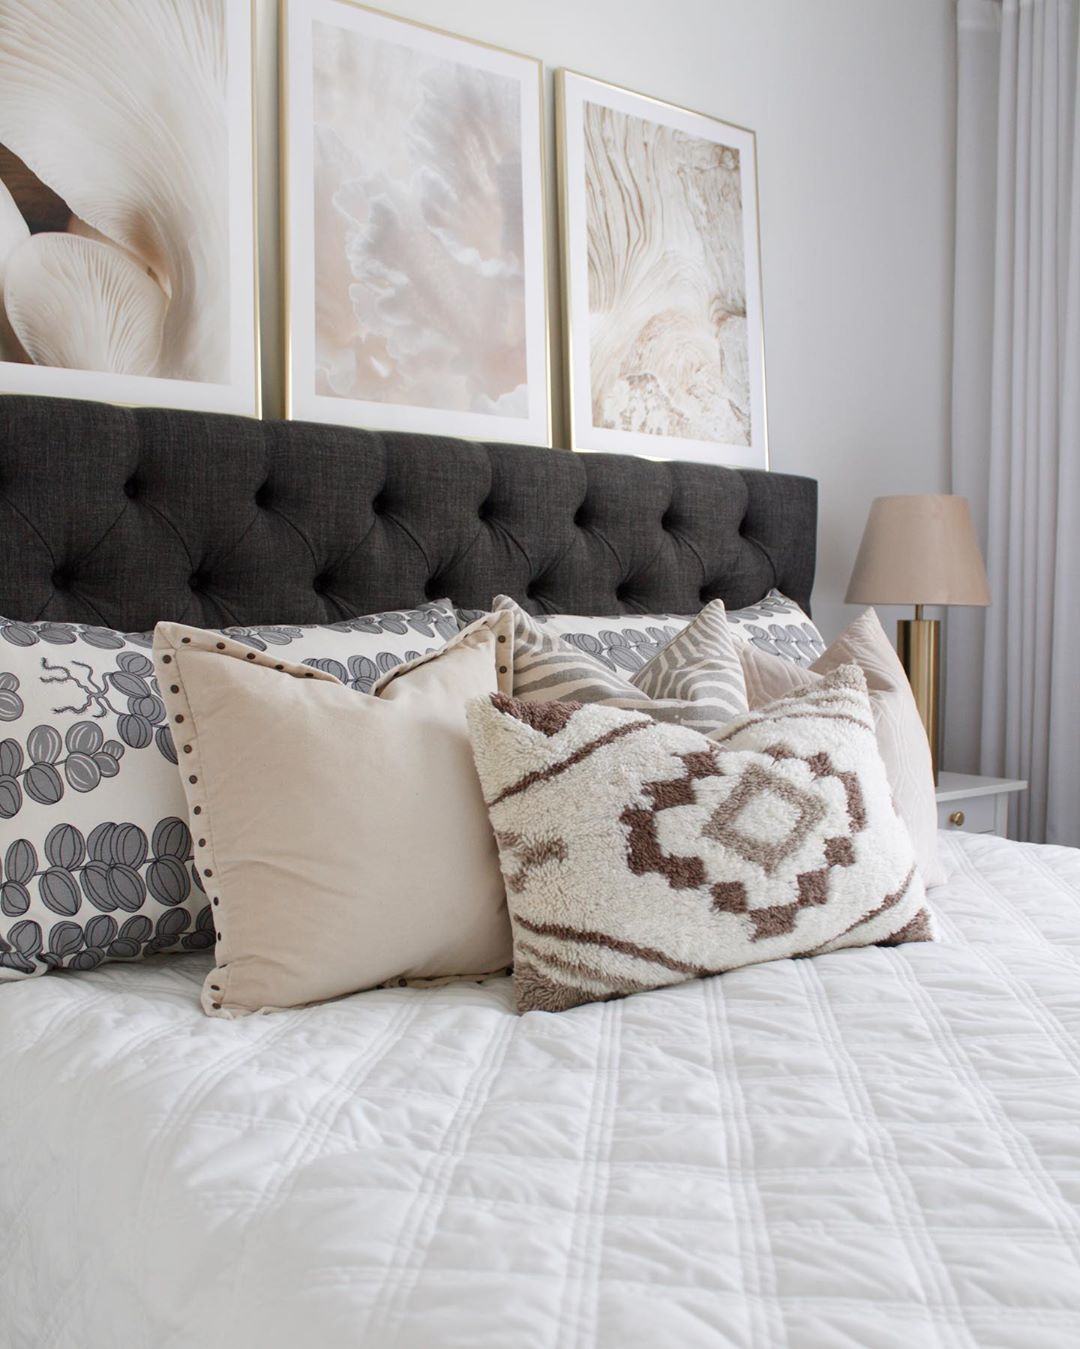 Household items lifespans: pillows